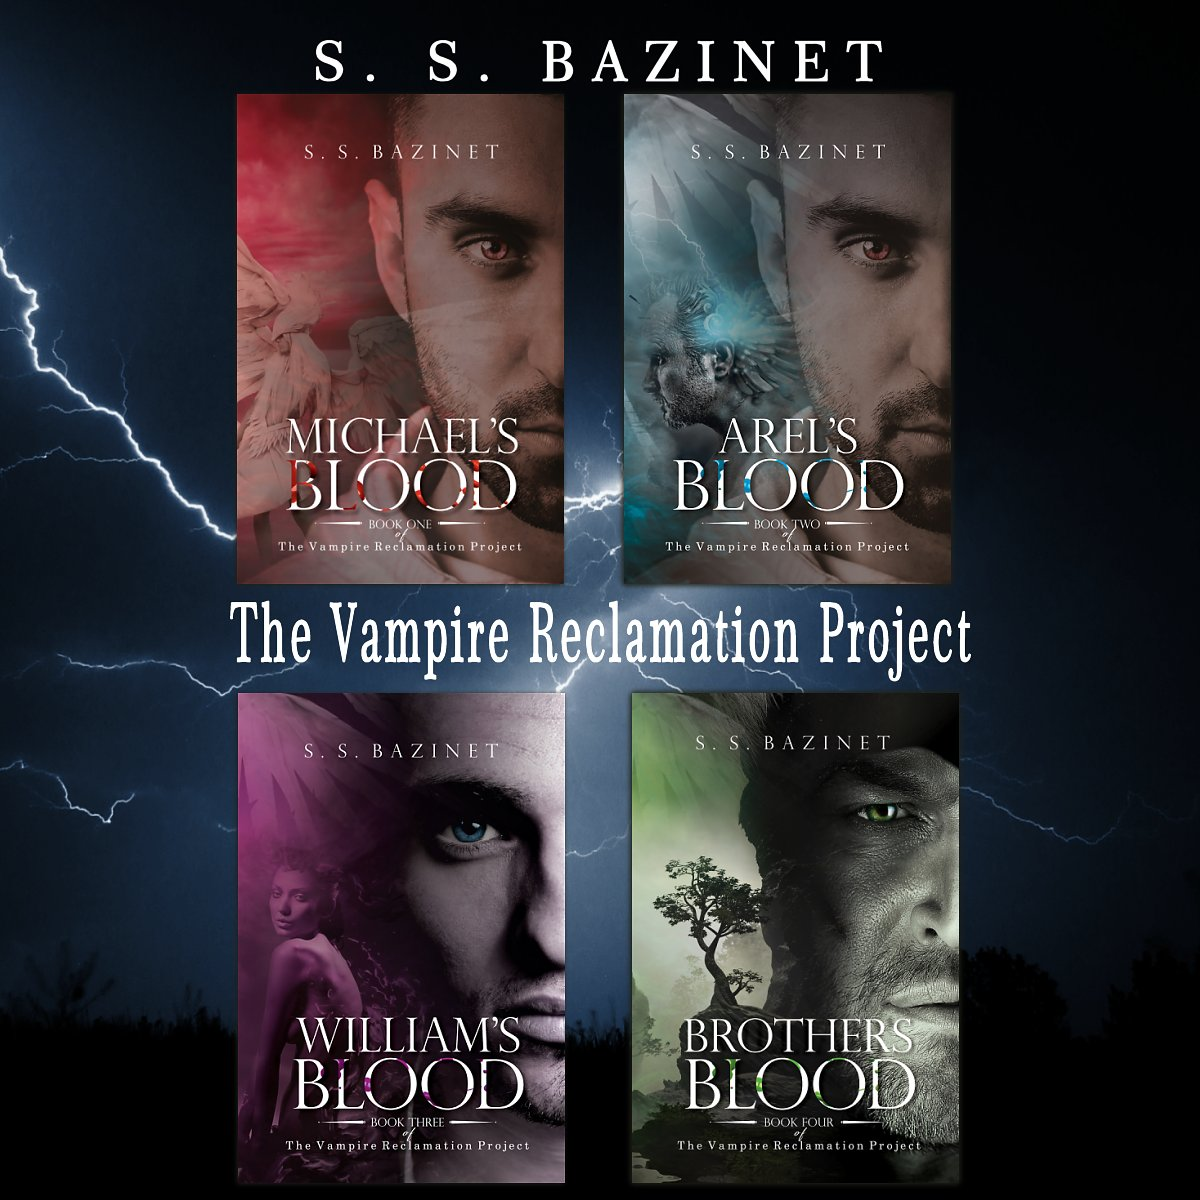 Arel&#39;s saving his soul no matter the cost! THE VAMPIRE RECLAMATION PROJECT  https://www. amazon.com/gp/product/B01 KVJWM6O/ &nbsp; …  …  FREE in #KU by @SSBazinet #Fantasy<br>http://pic.twitter.com/RmE3Xy0EtK